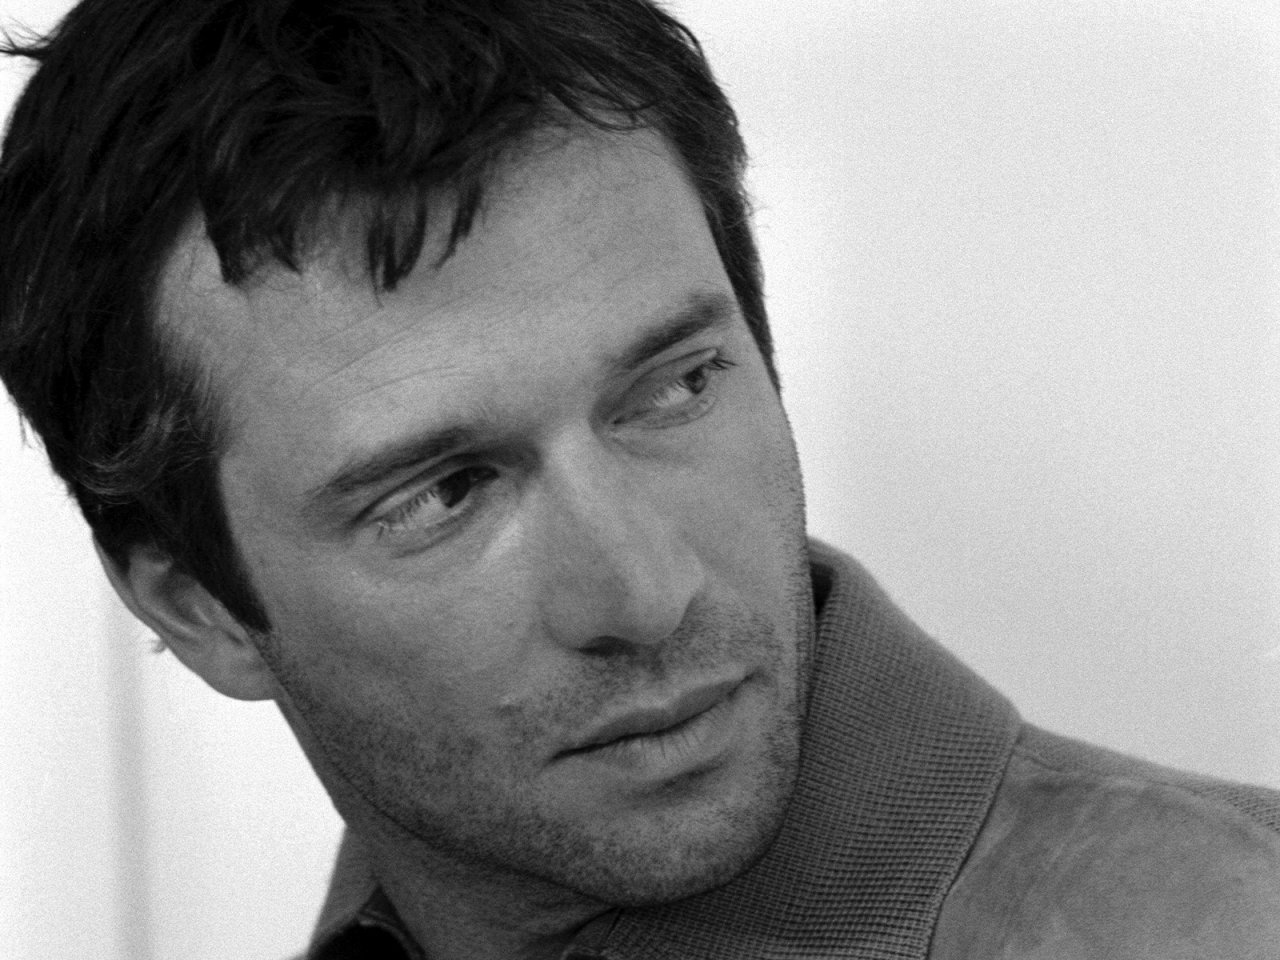 james purefoy hugh jackman